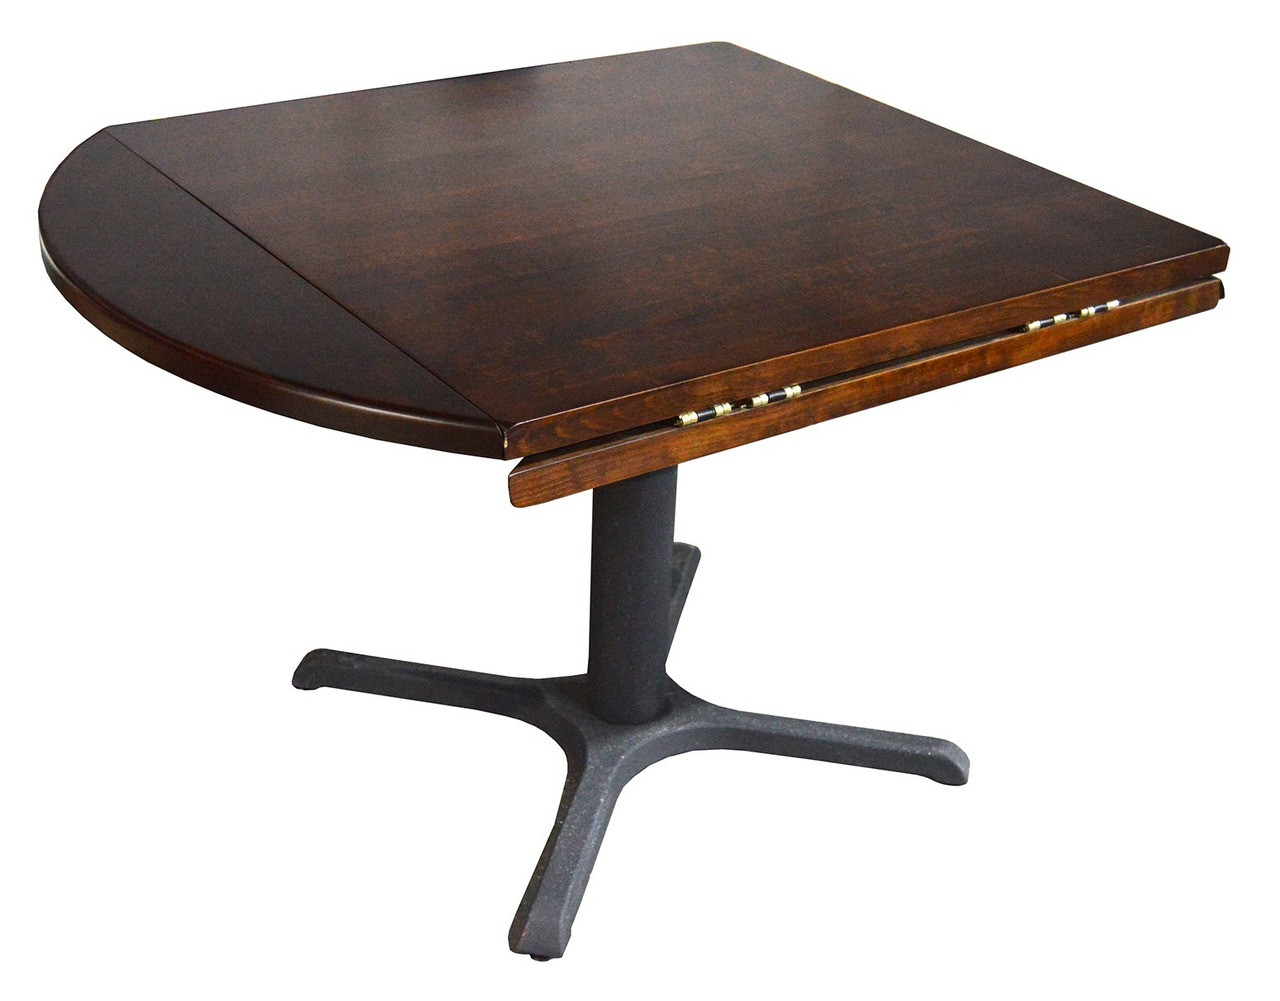 Reastaurant Tables Restaurant Flip Top Table Top With Drop Leaf On Heavy Duty Base